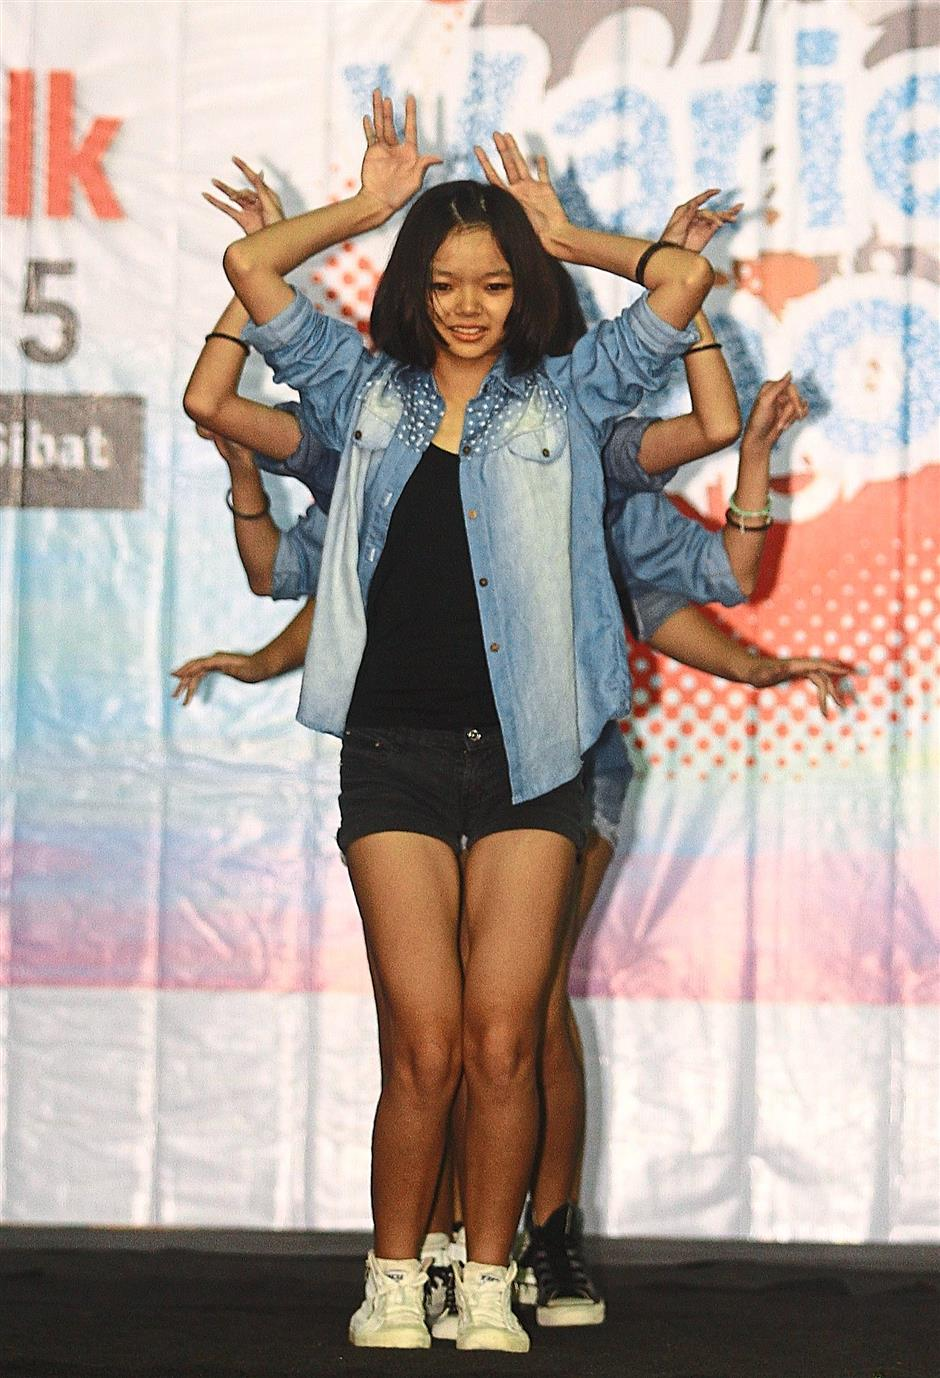 3 Dancers from D' Artiz Studio performing a hip-hop breakdance number at the variety show.